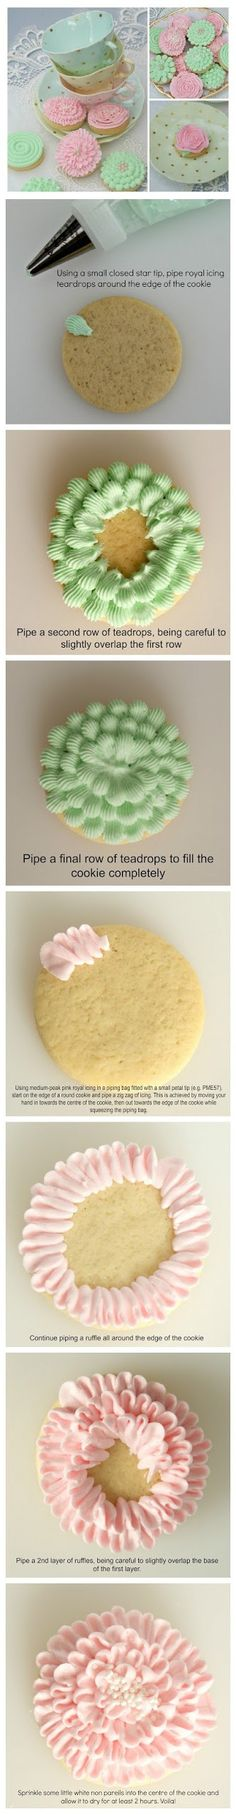 cookglee recipe pictures: Springtime Cookies (cake frosting tips piping bag) Fancy Cookies, Iced Cookies, Cute Cookies, Cookies Et Biscuits, Cupcake Cookies, Sugar Cookies, Icing Tips, Frosting Tips, Frosting Recipes